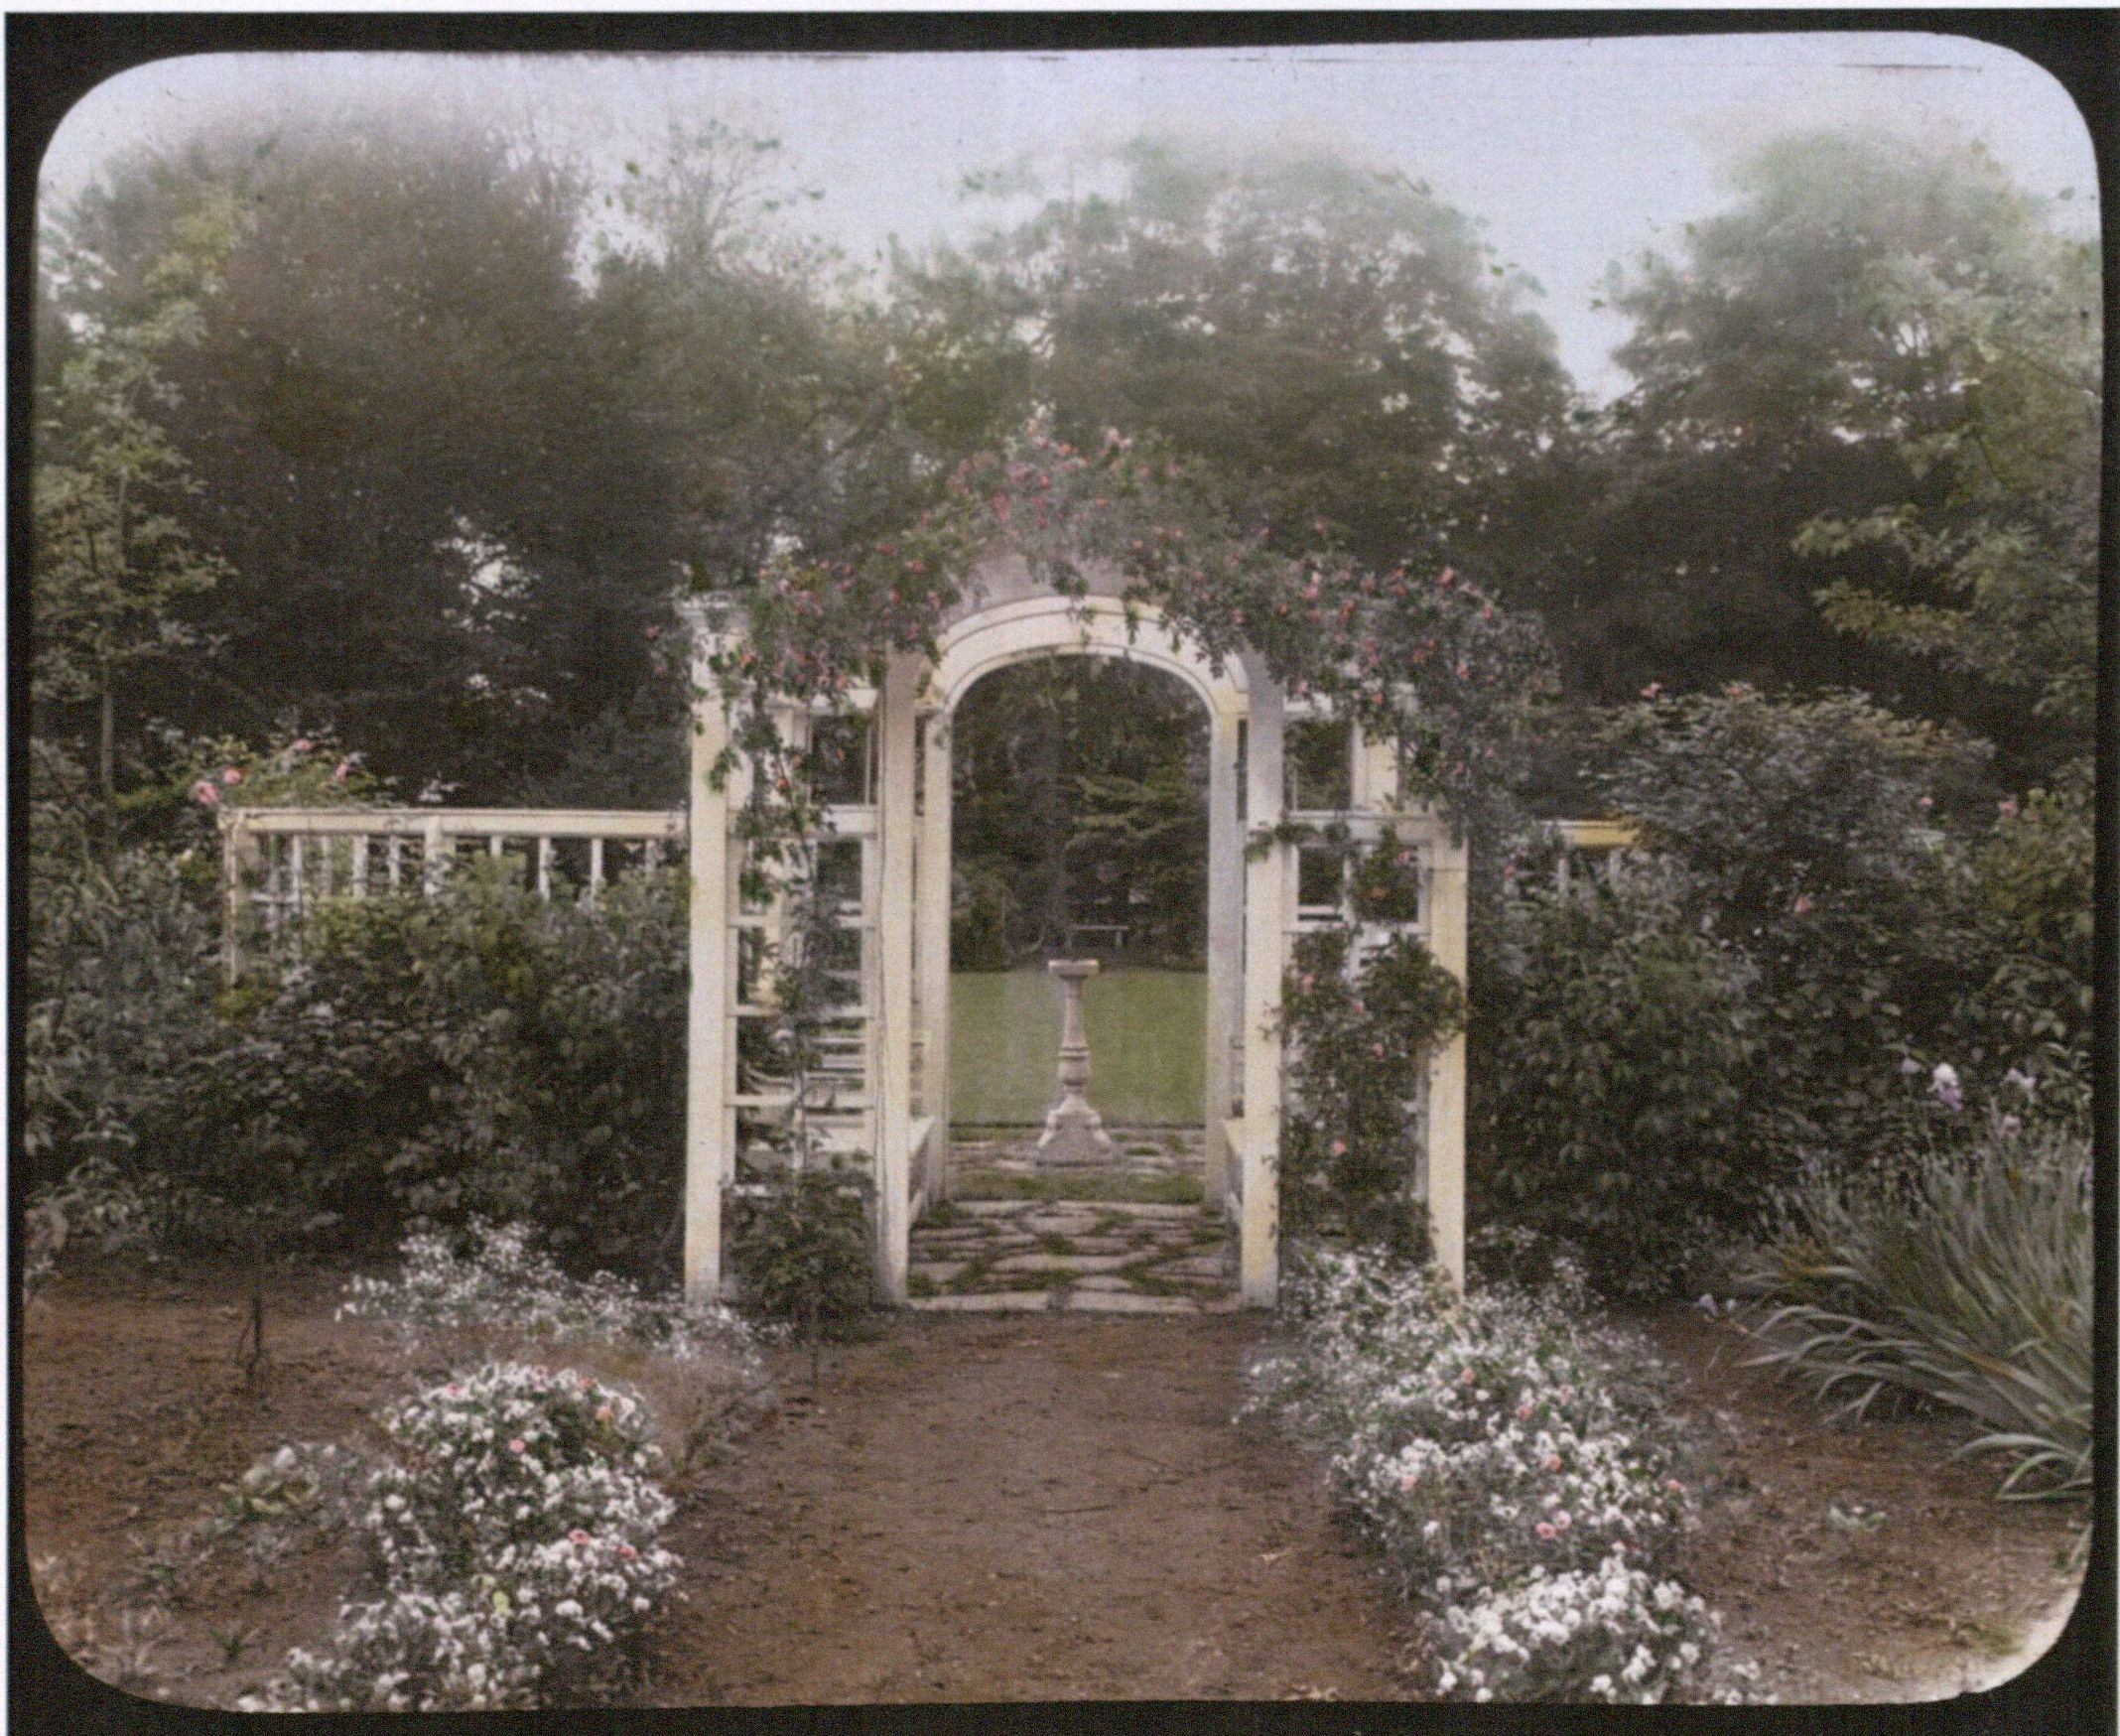 Fanny Mulford's garden including the arbor seat, c. 1916. Photograph by Frances B. Johnston. Courtesy Library of Congress.